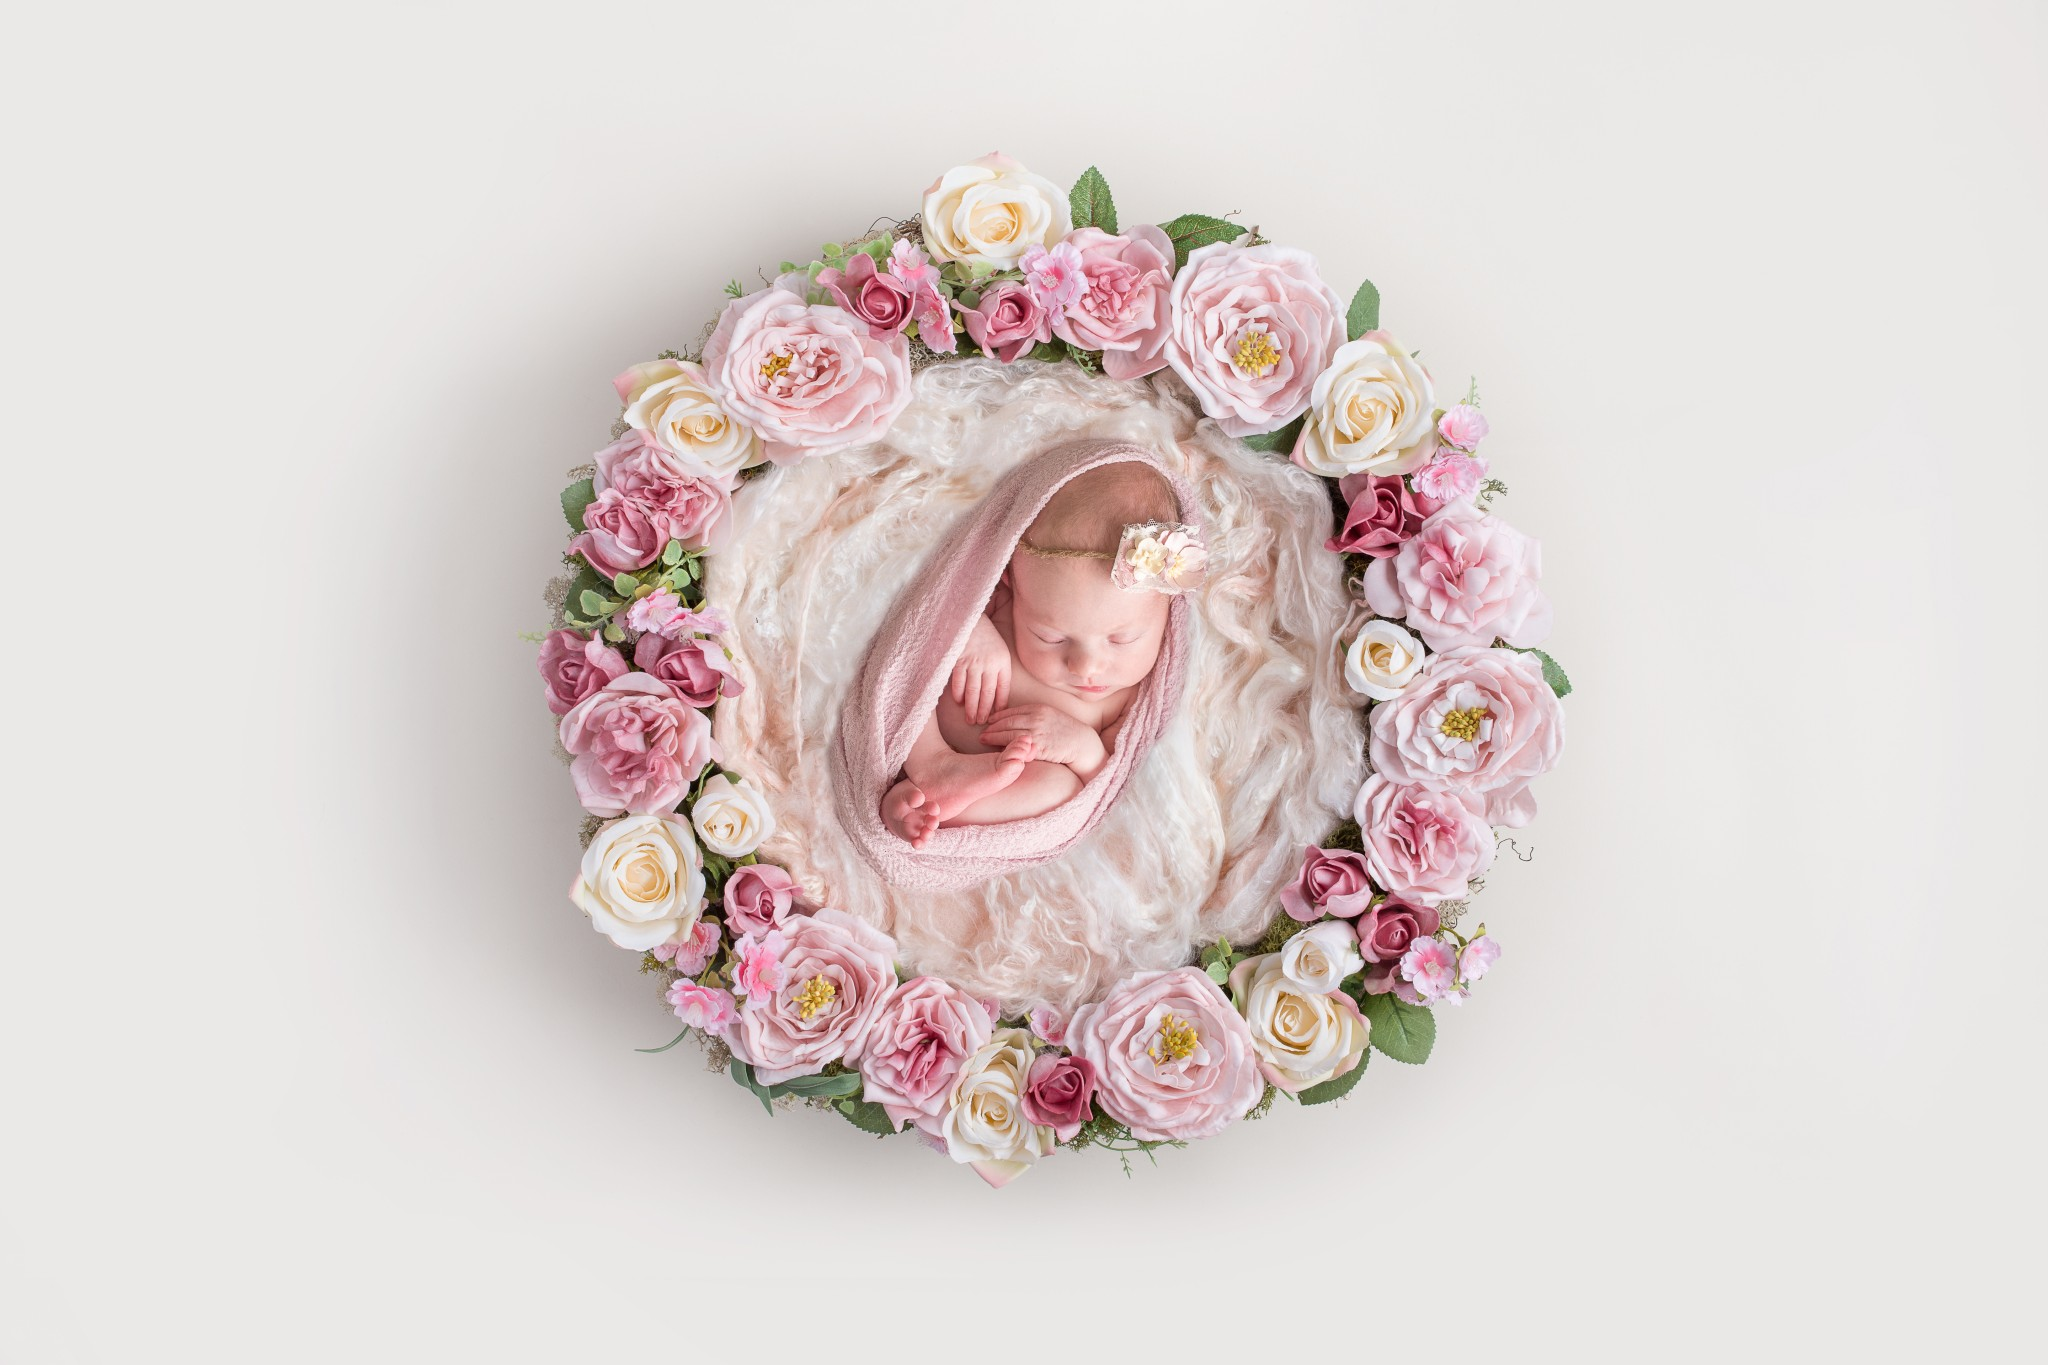 A newborn baby girl lays upon layers of pink fabric while laid in a basket adorned with florals/flowers during her newborn portrait photography session in Wexford PA near Pittsburgh